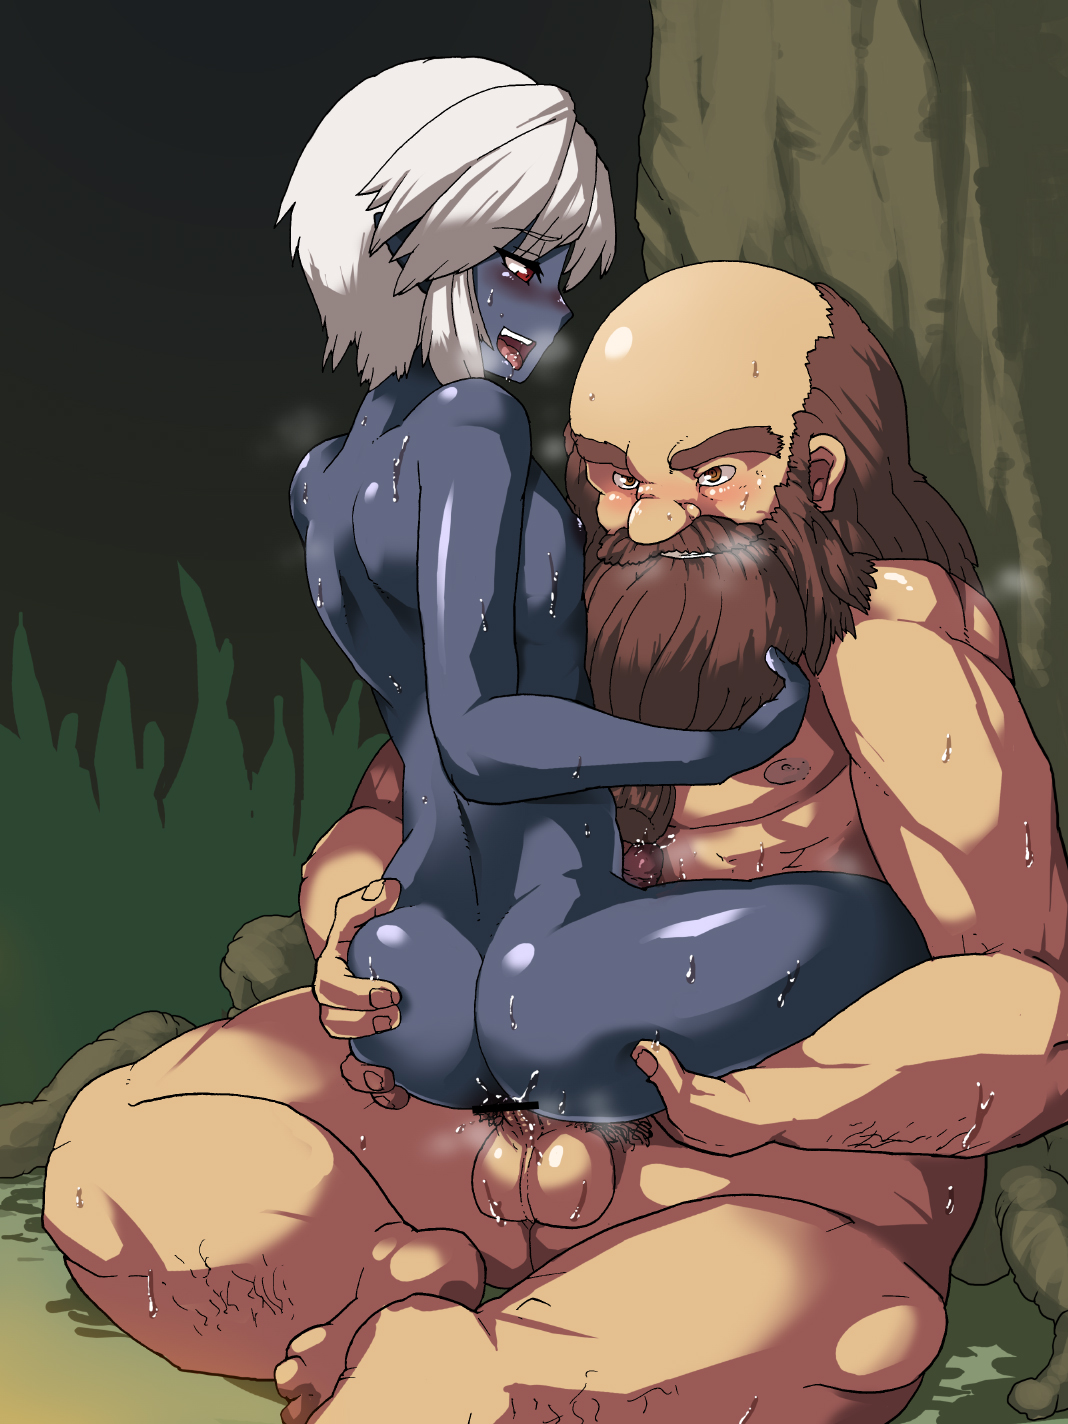 Dwarves hentai sex scene